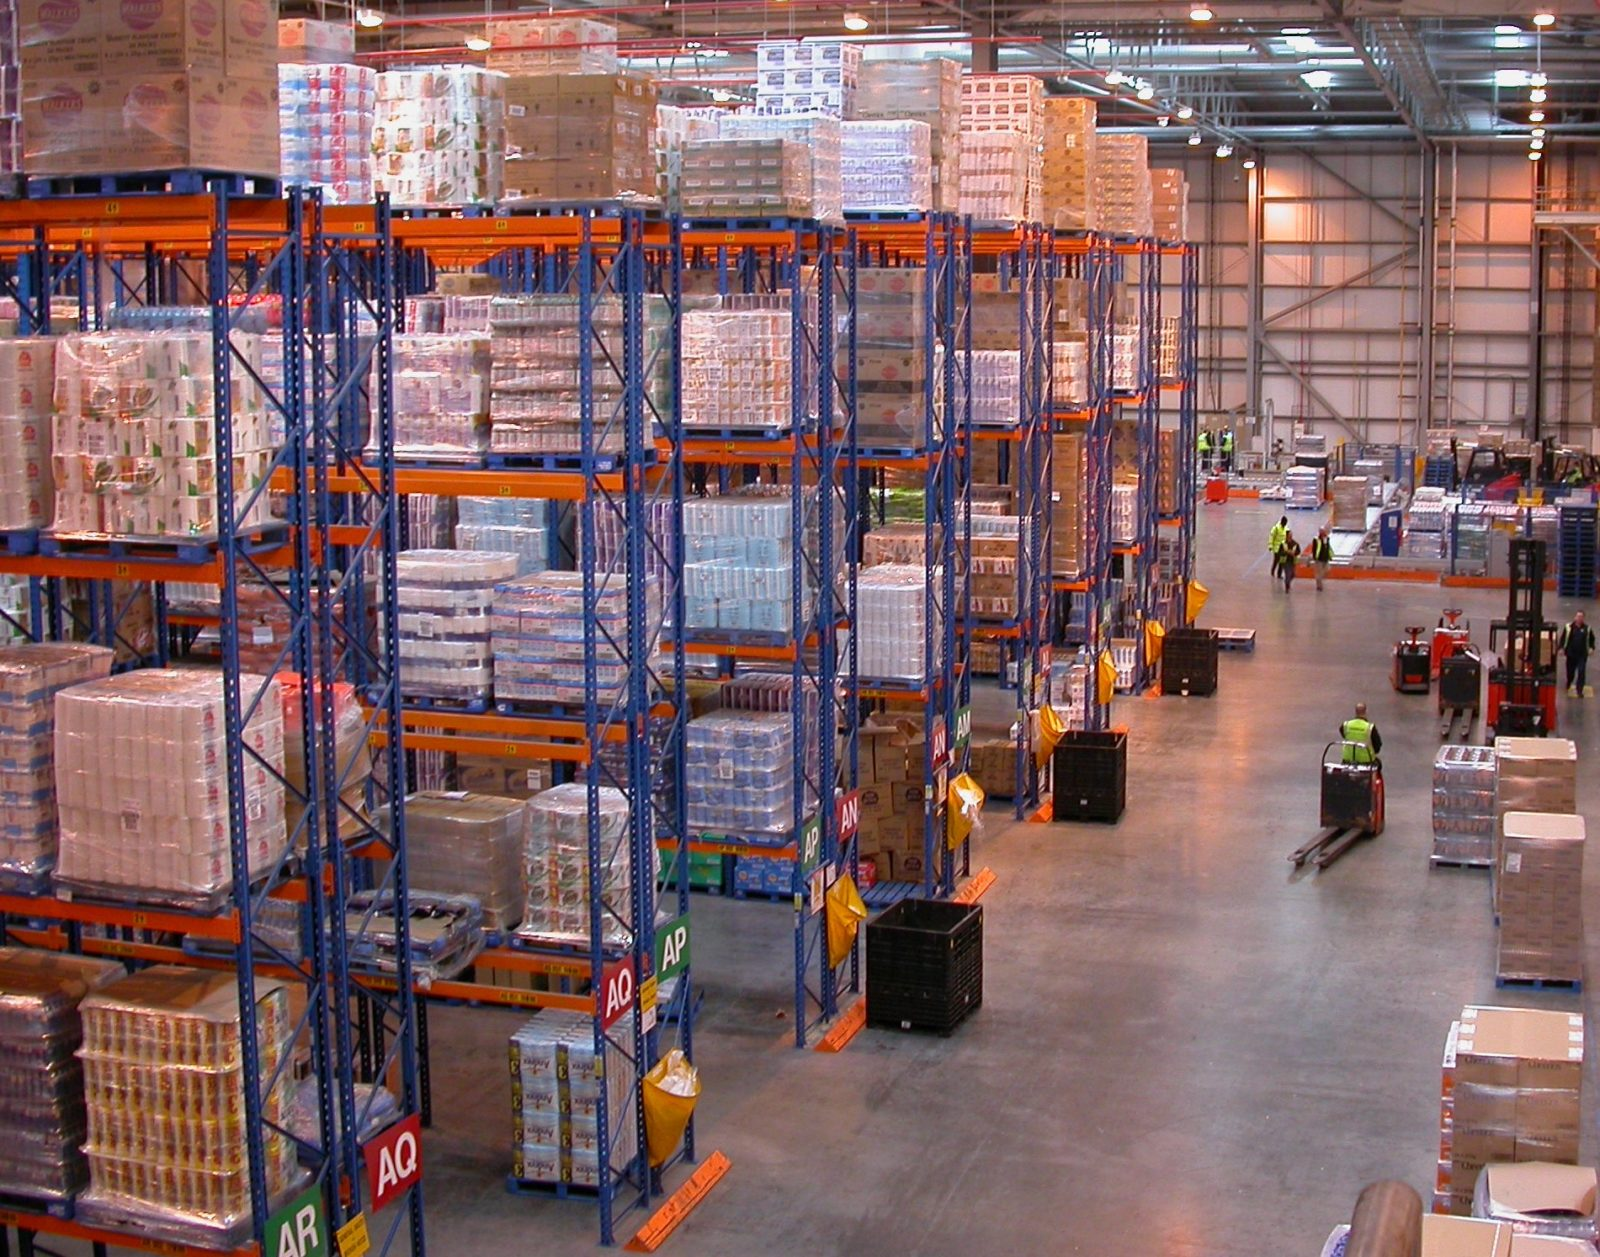 Fire Alarm Sytems for Warehouses & Distribution Centres